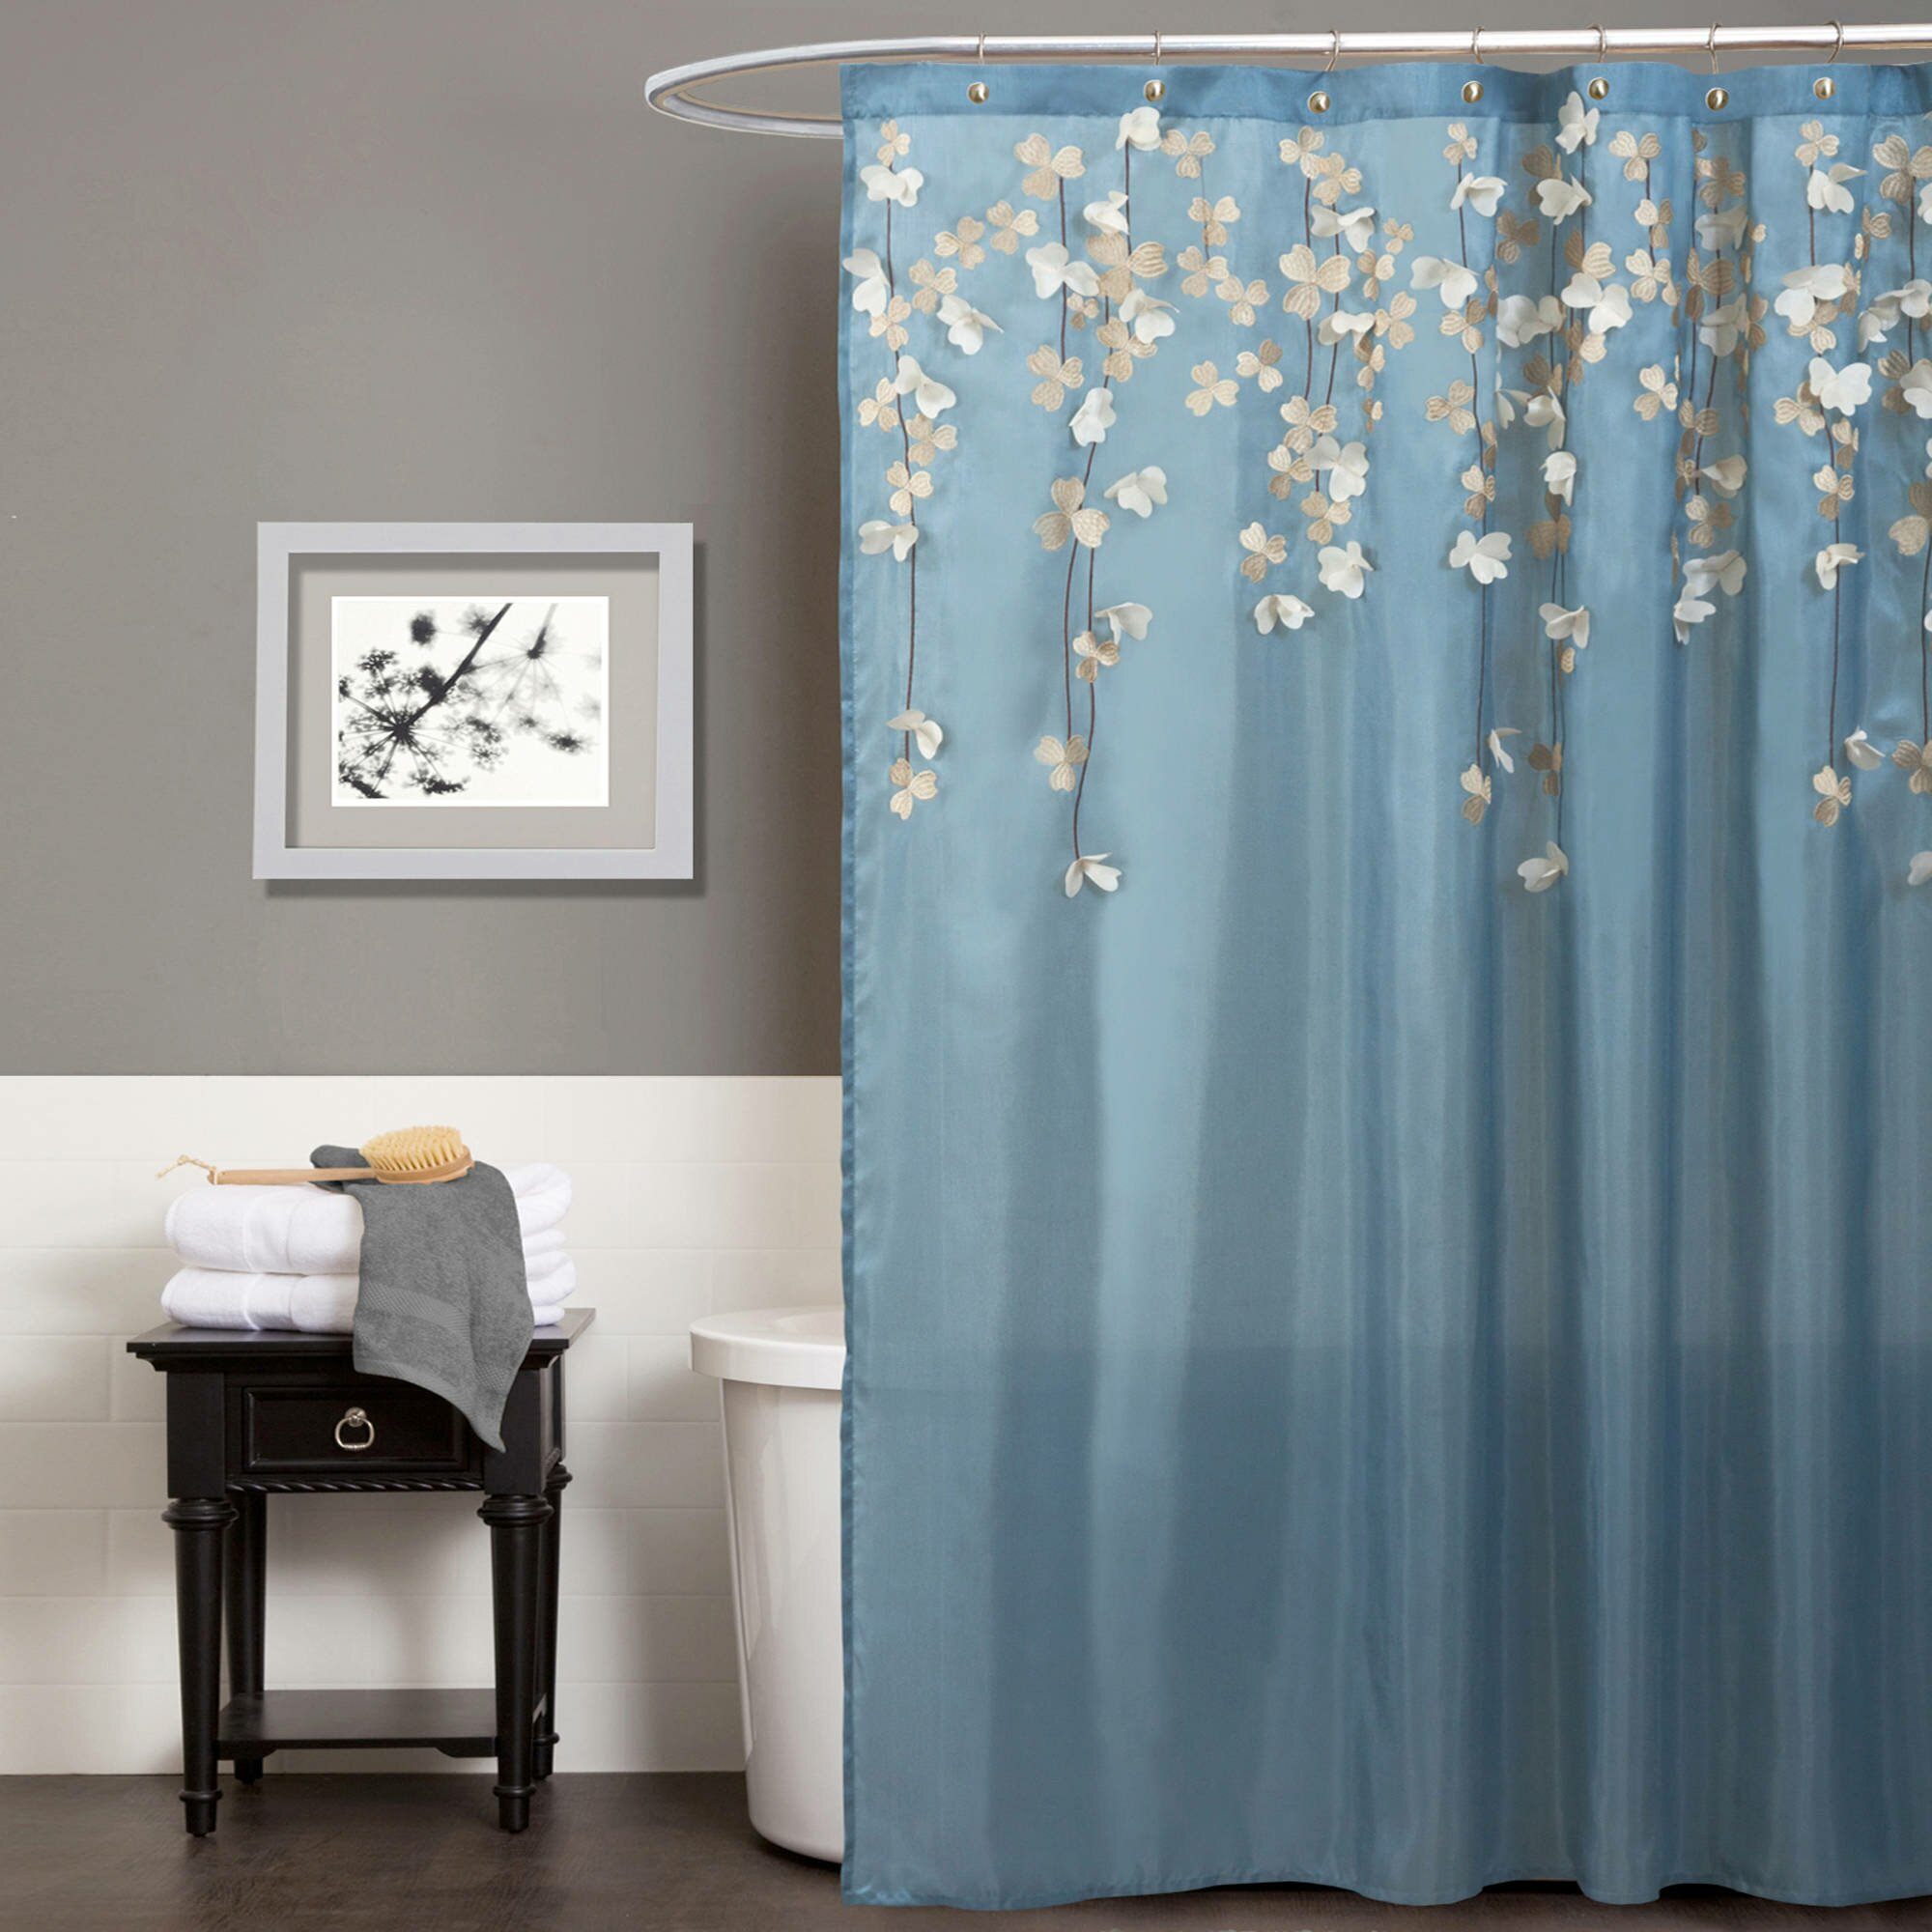 Curtain Walmart Shower Curtain  Wal Mart Shower Curtains  Discount Fabric Shower Curtains